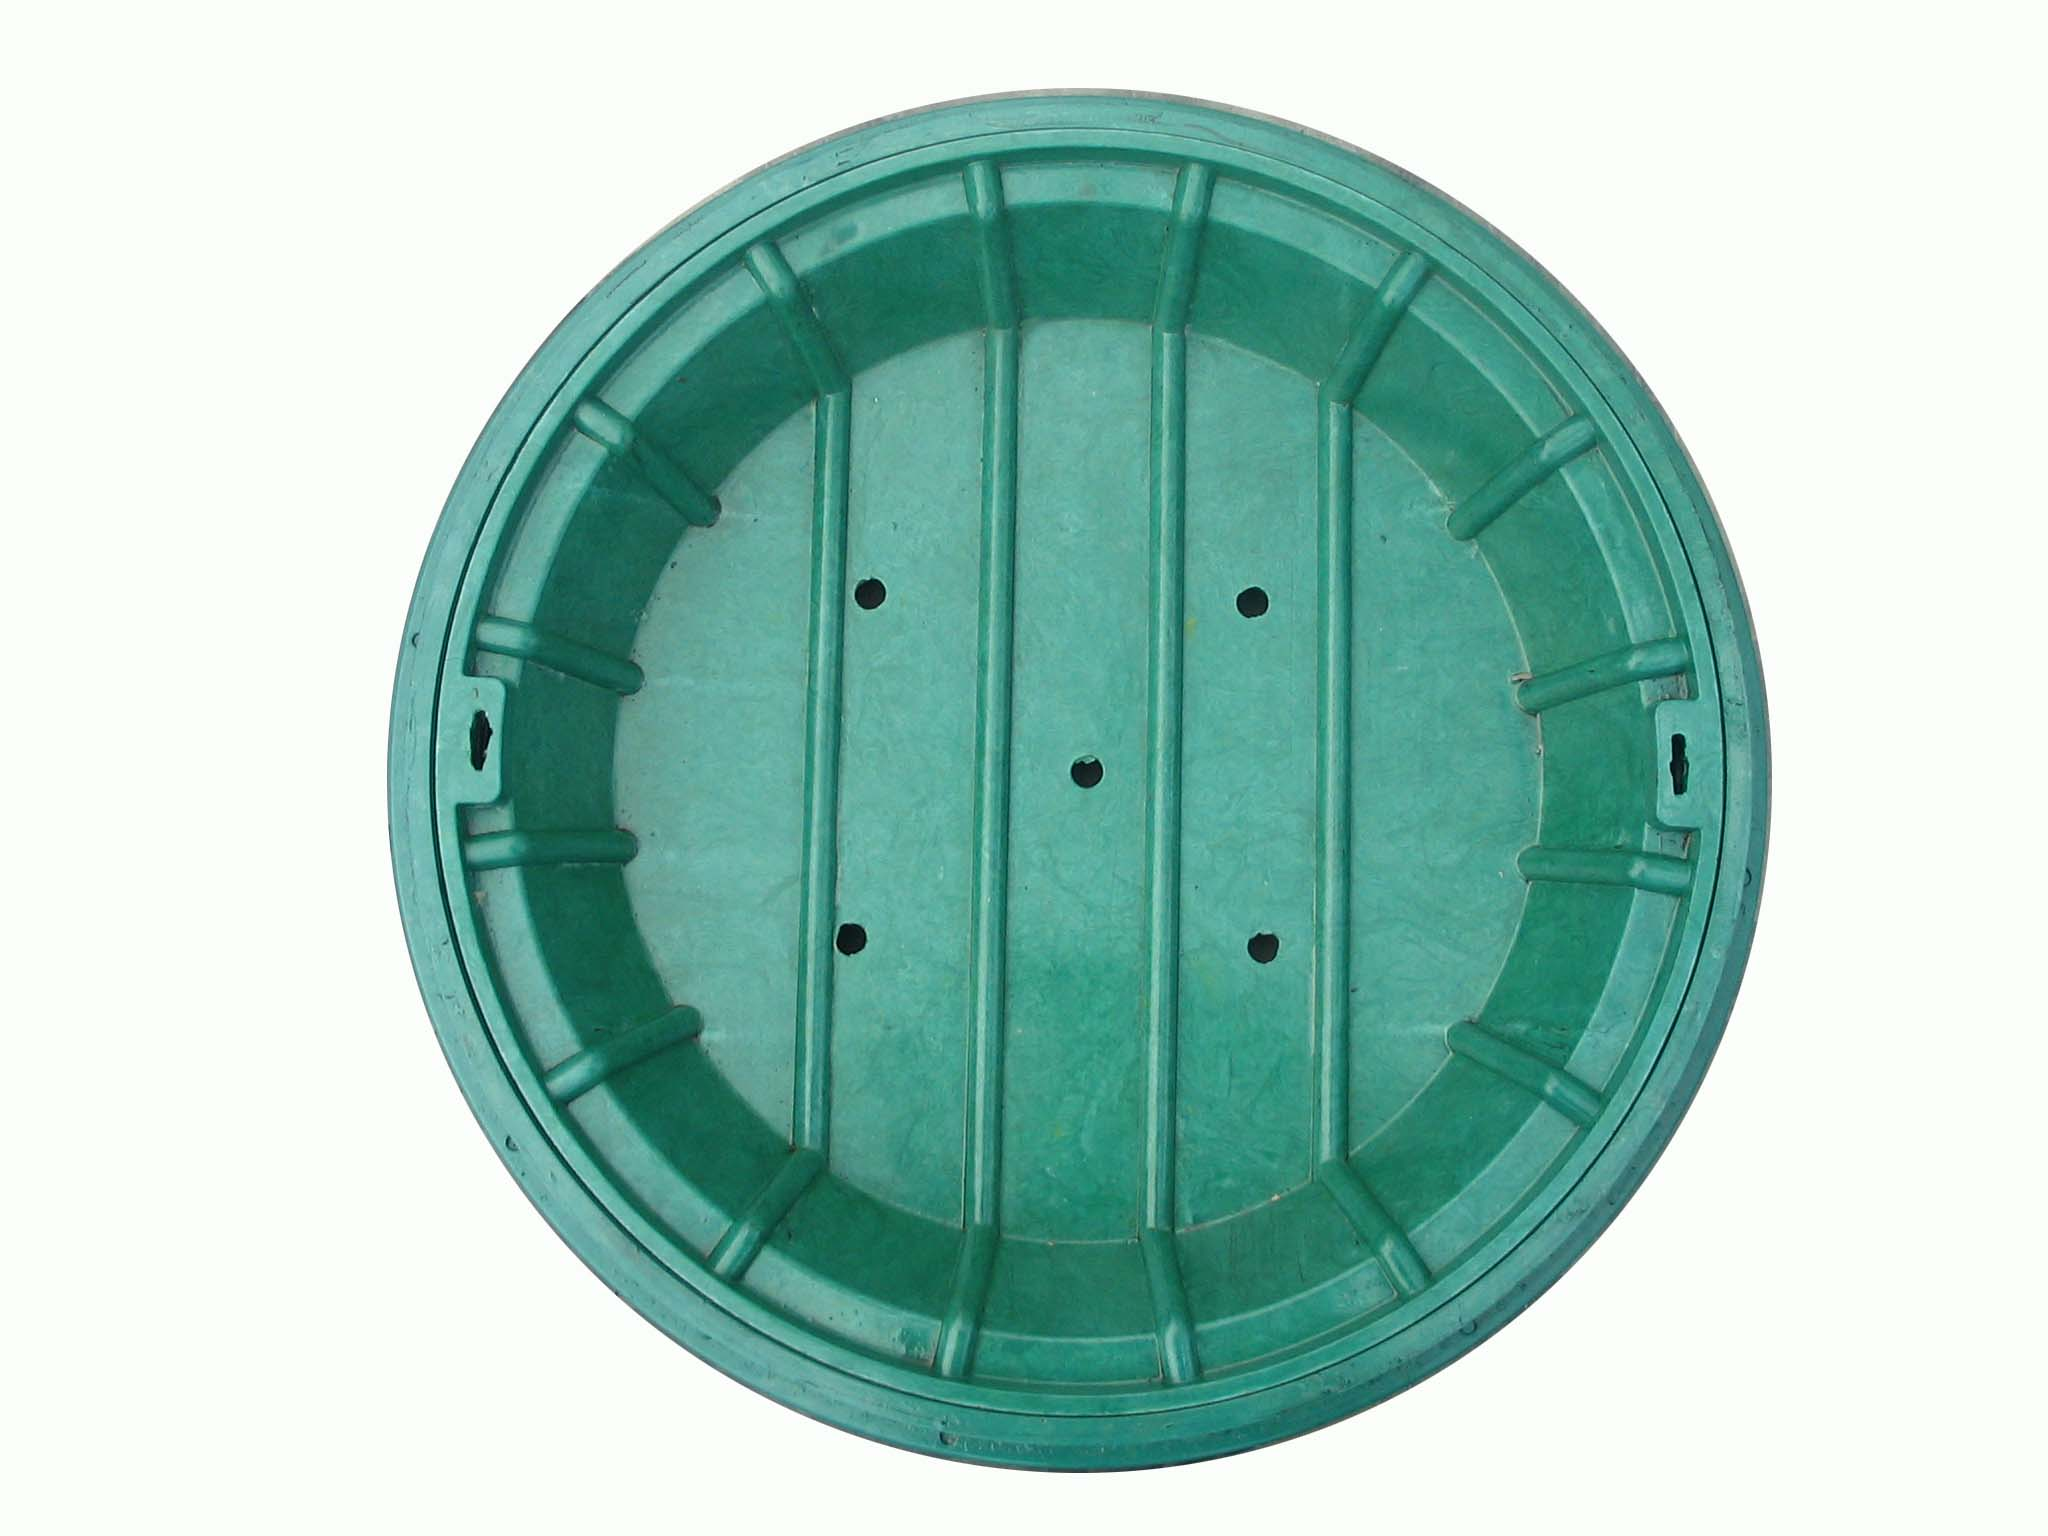 High quality anti-thef SMC(sheet molding compound) round manhole cover